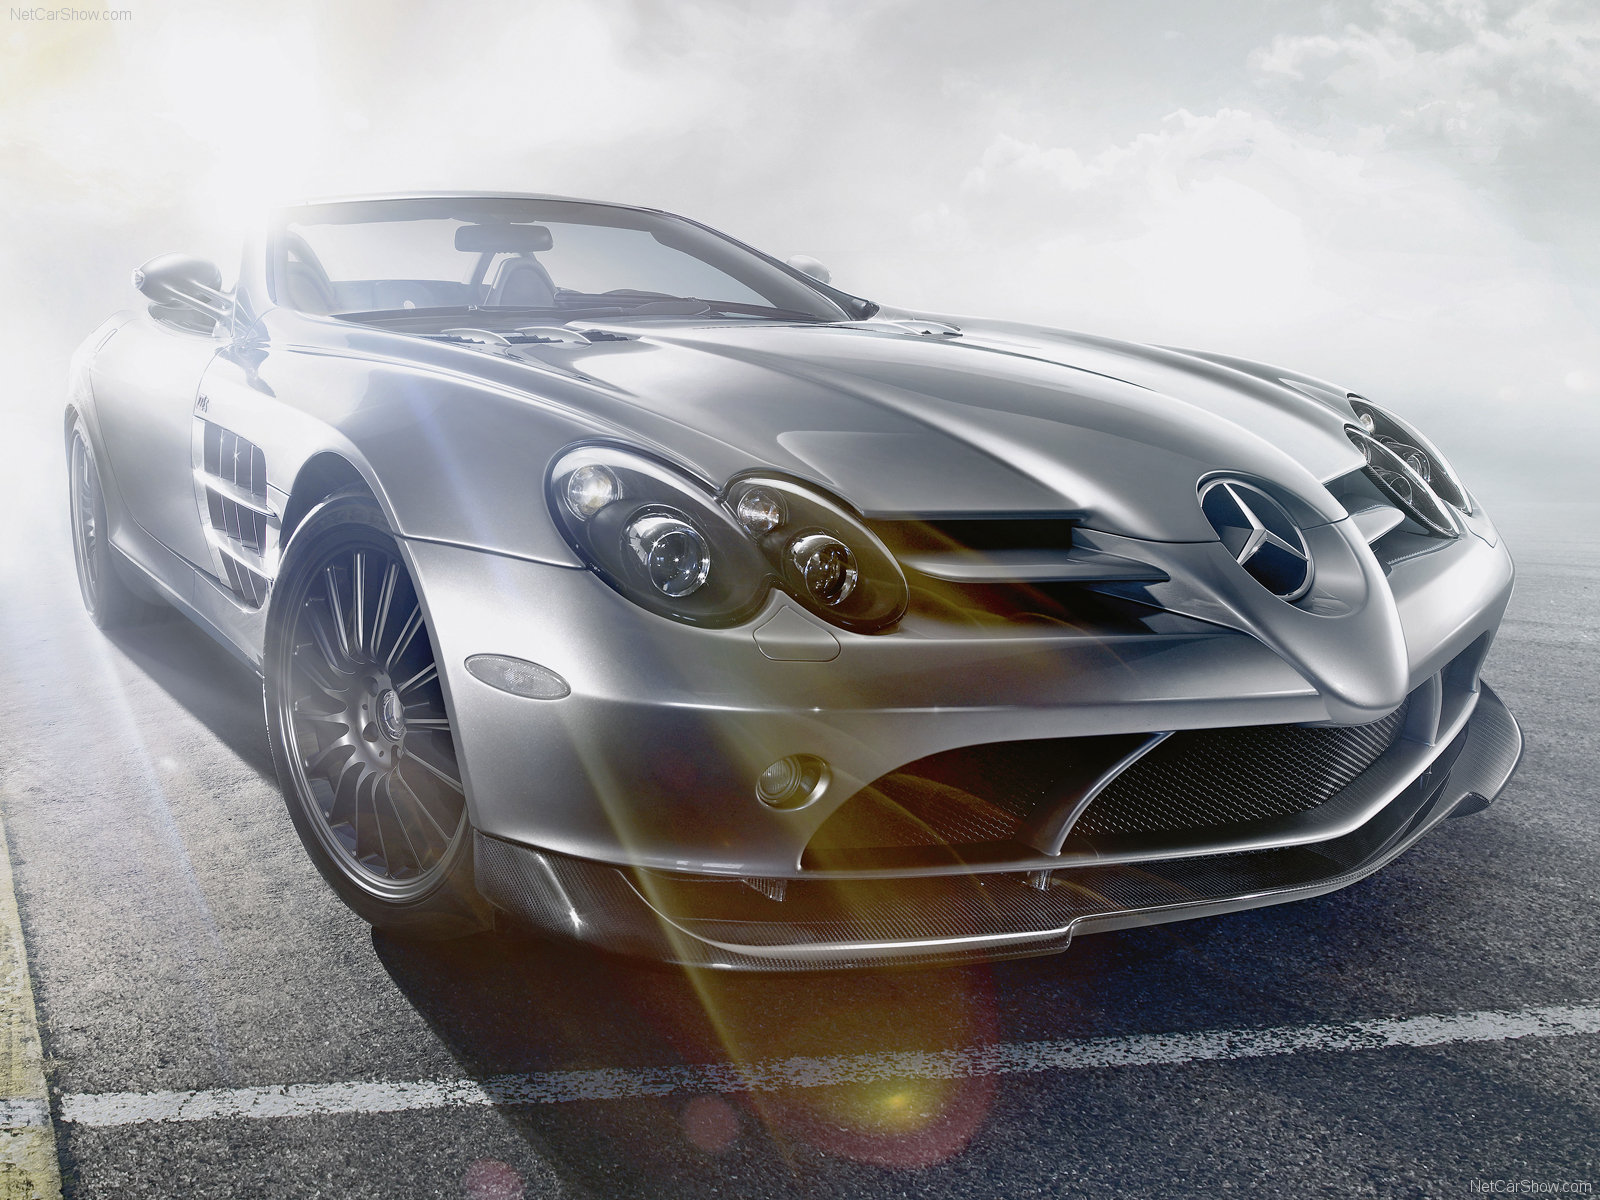 Mercedes benz slr wallpapers world of cars for Mercedes benz slr